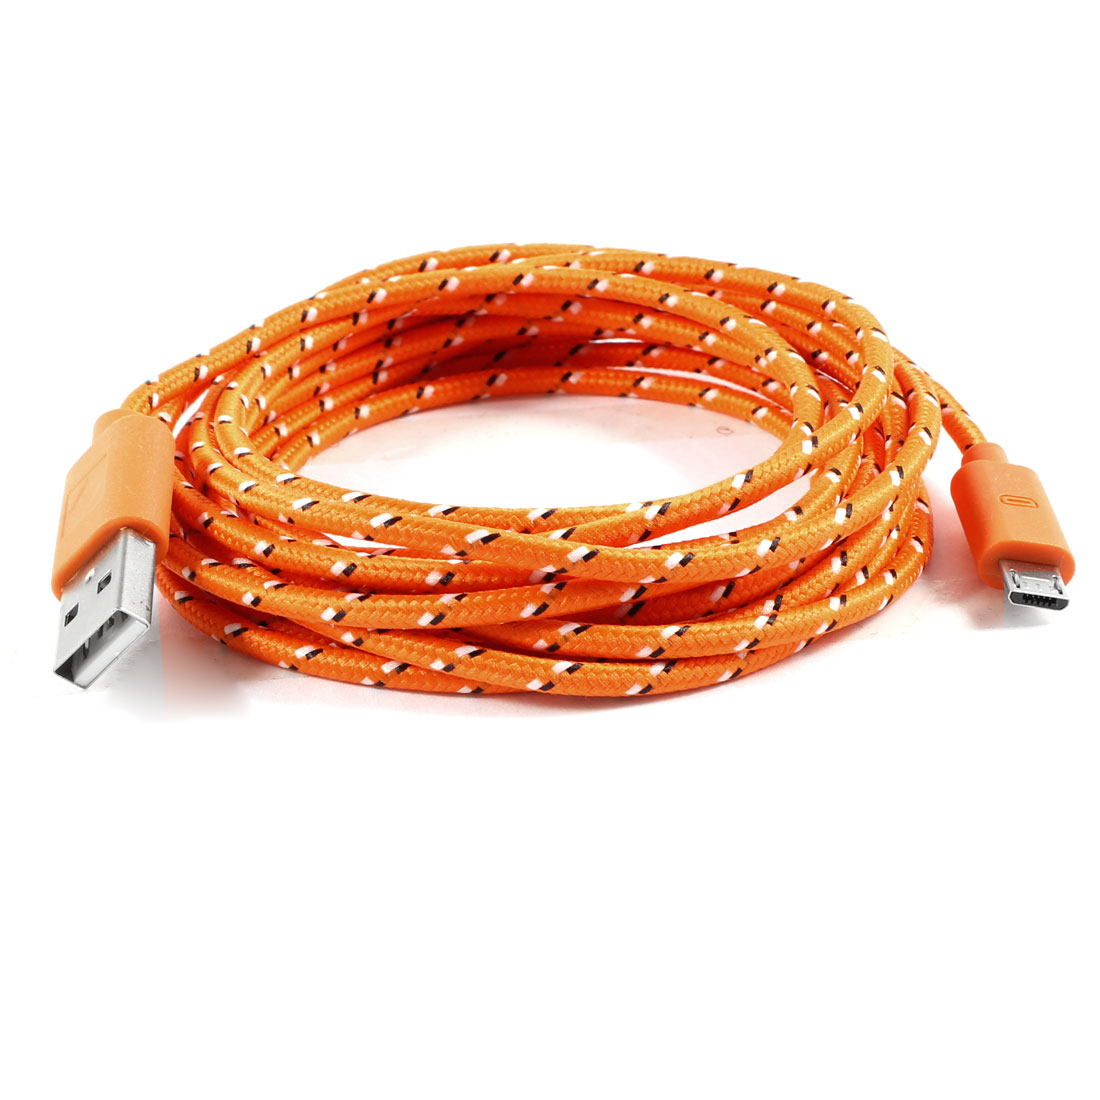 3 Meter 10ft USB 2.0 to Micro USB Roud Data Charge Cable Orange for HTC Nokia